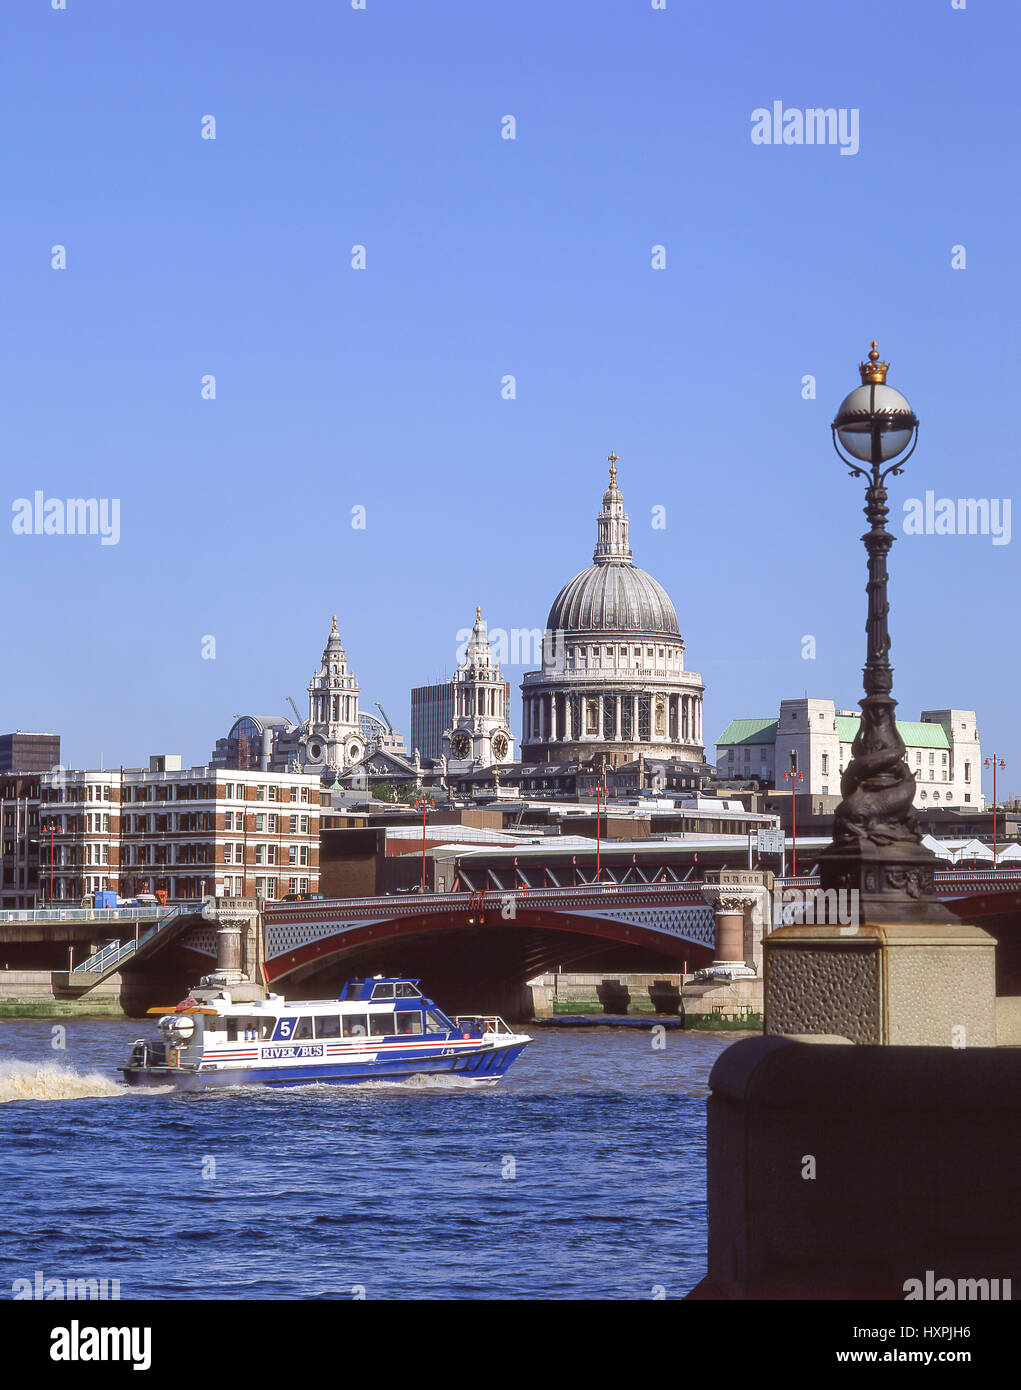 St Paul's Cathedral and Blackfriars Bridge across River Thames, City of London, Greater London, England, United - Stock Image